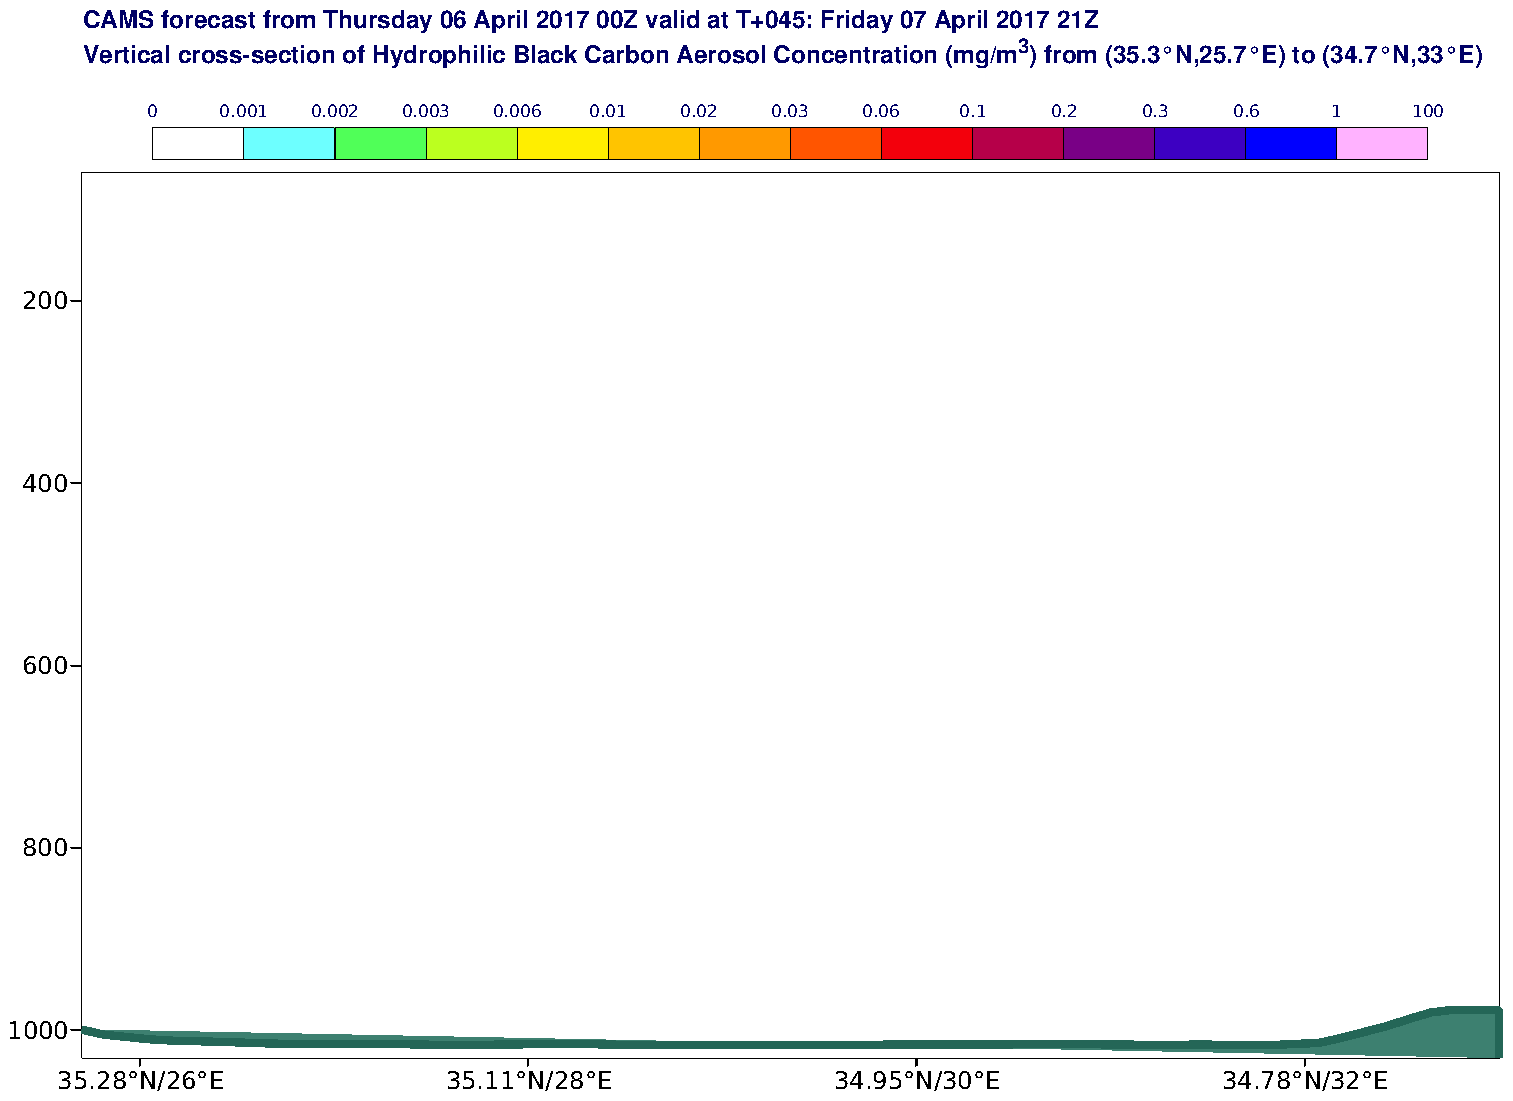 Vertical cross-section of Hydrophilic Black Carbon Aerosol Concentration (mg/m3) valid at T45 - 2017-04-07 21:00